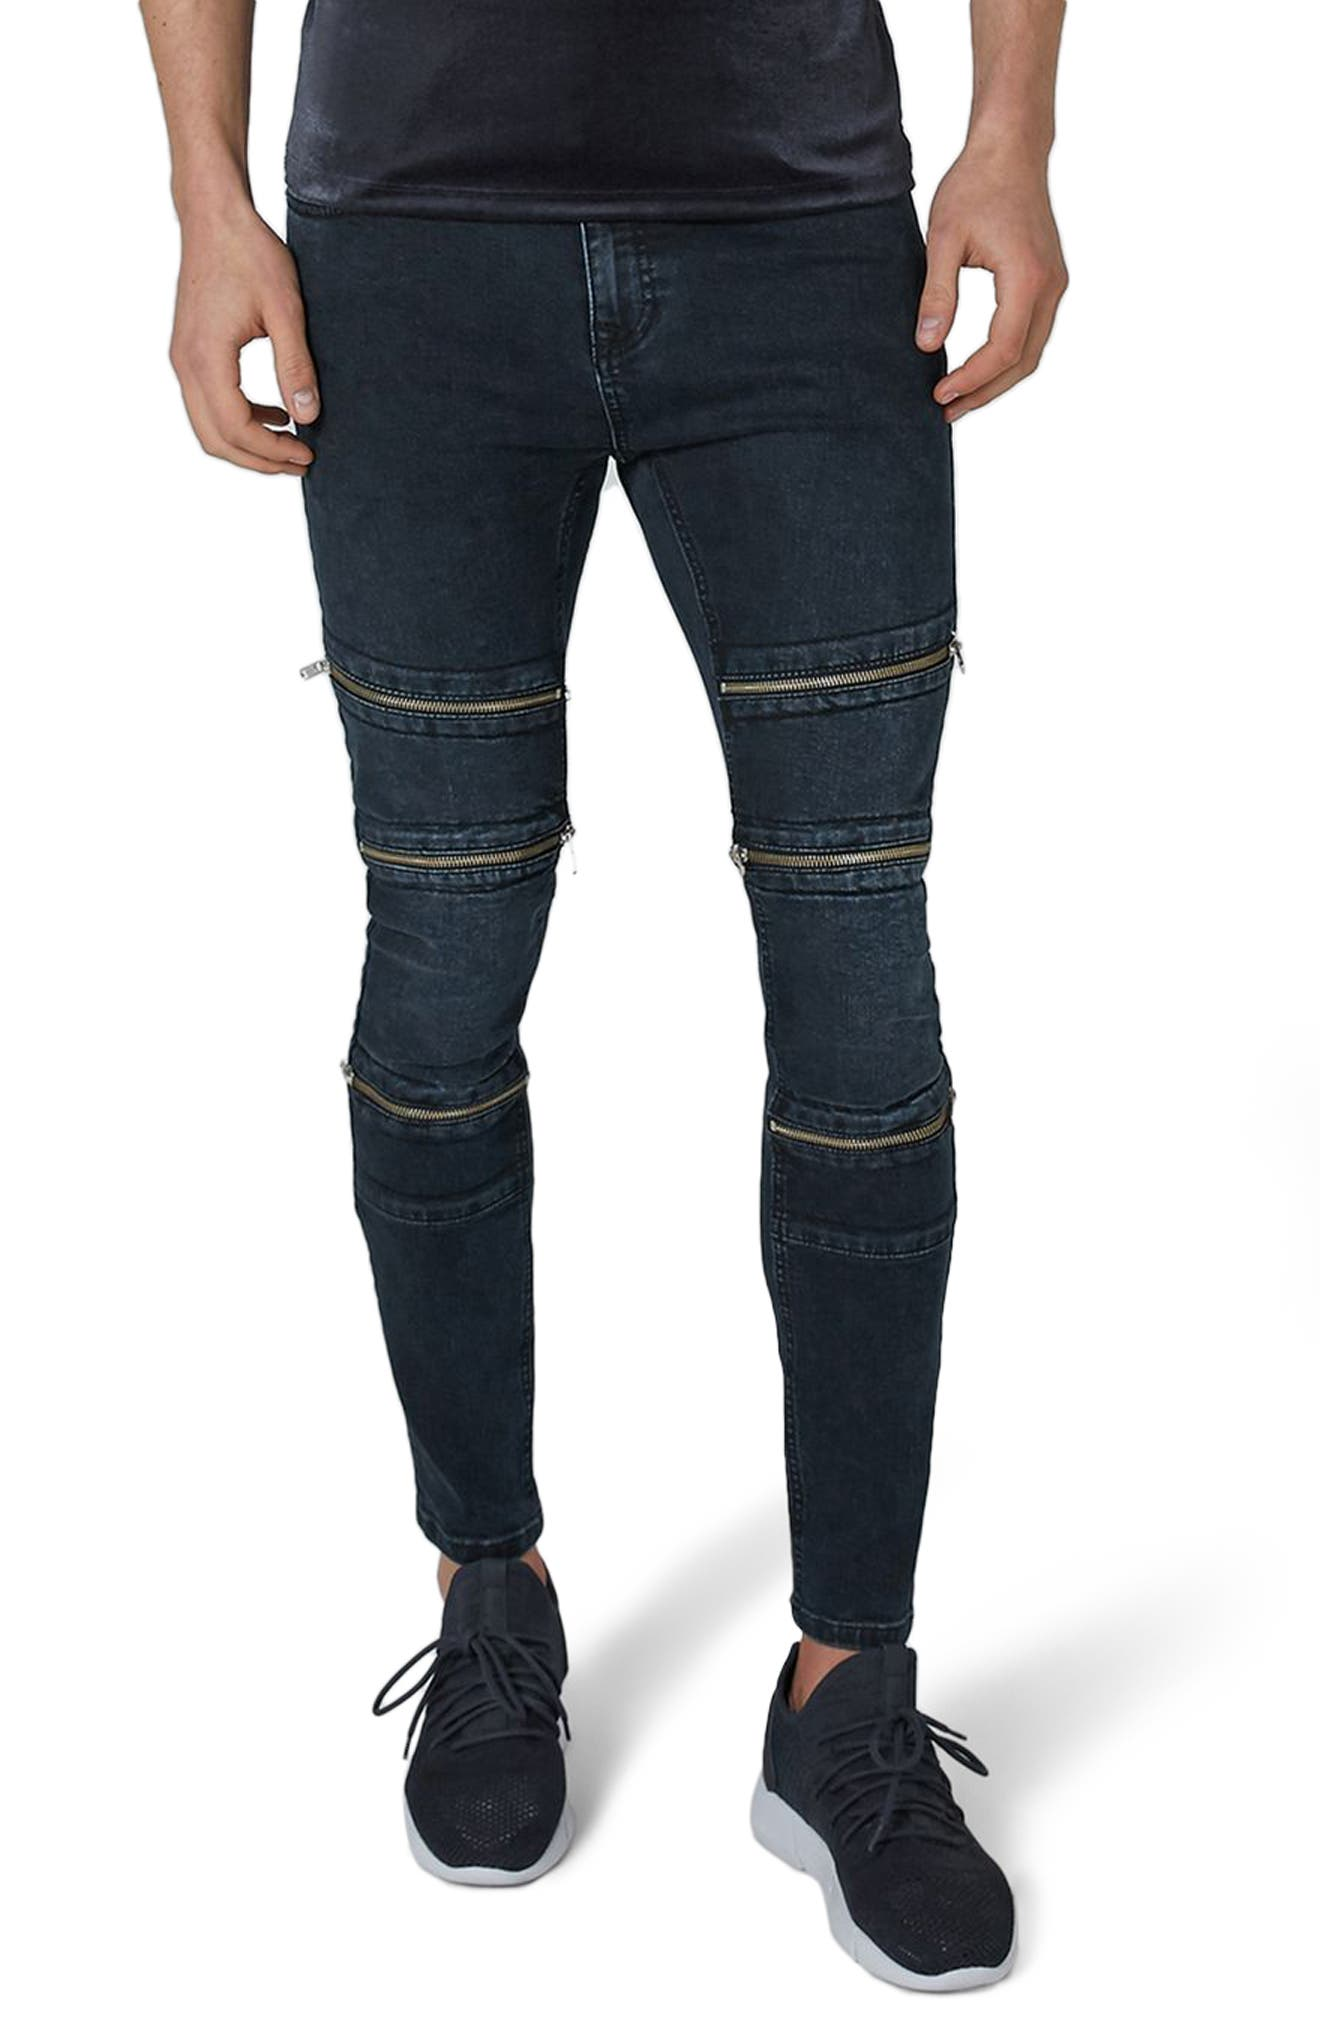 Alternate Image 1 Selected - Topman Multi Zip Spray-On Jeans